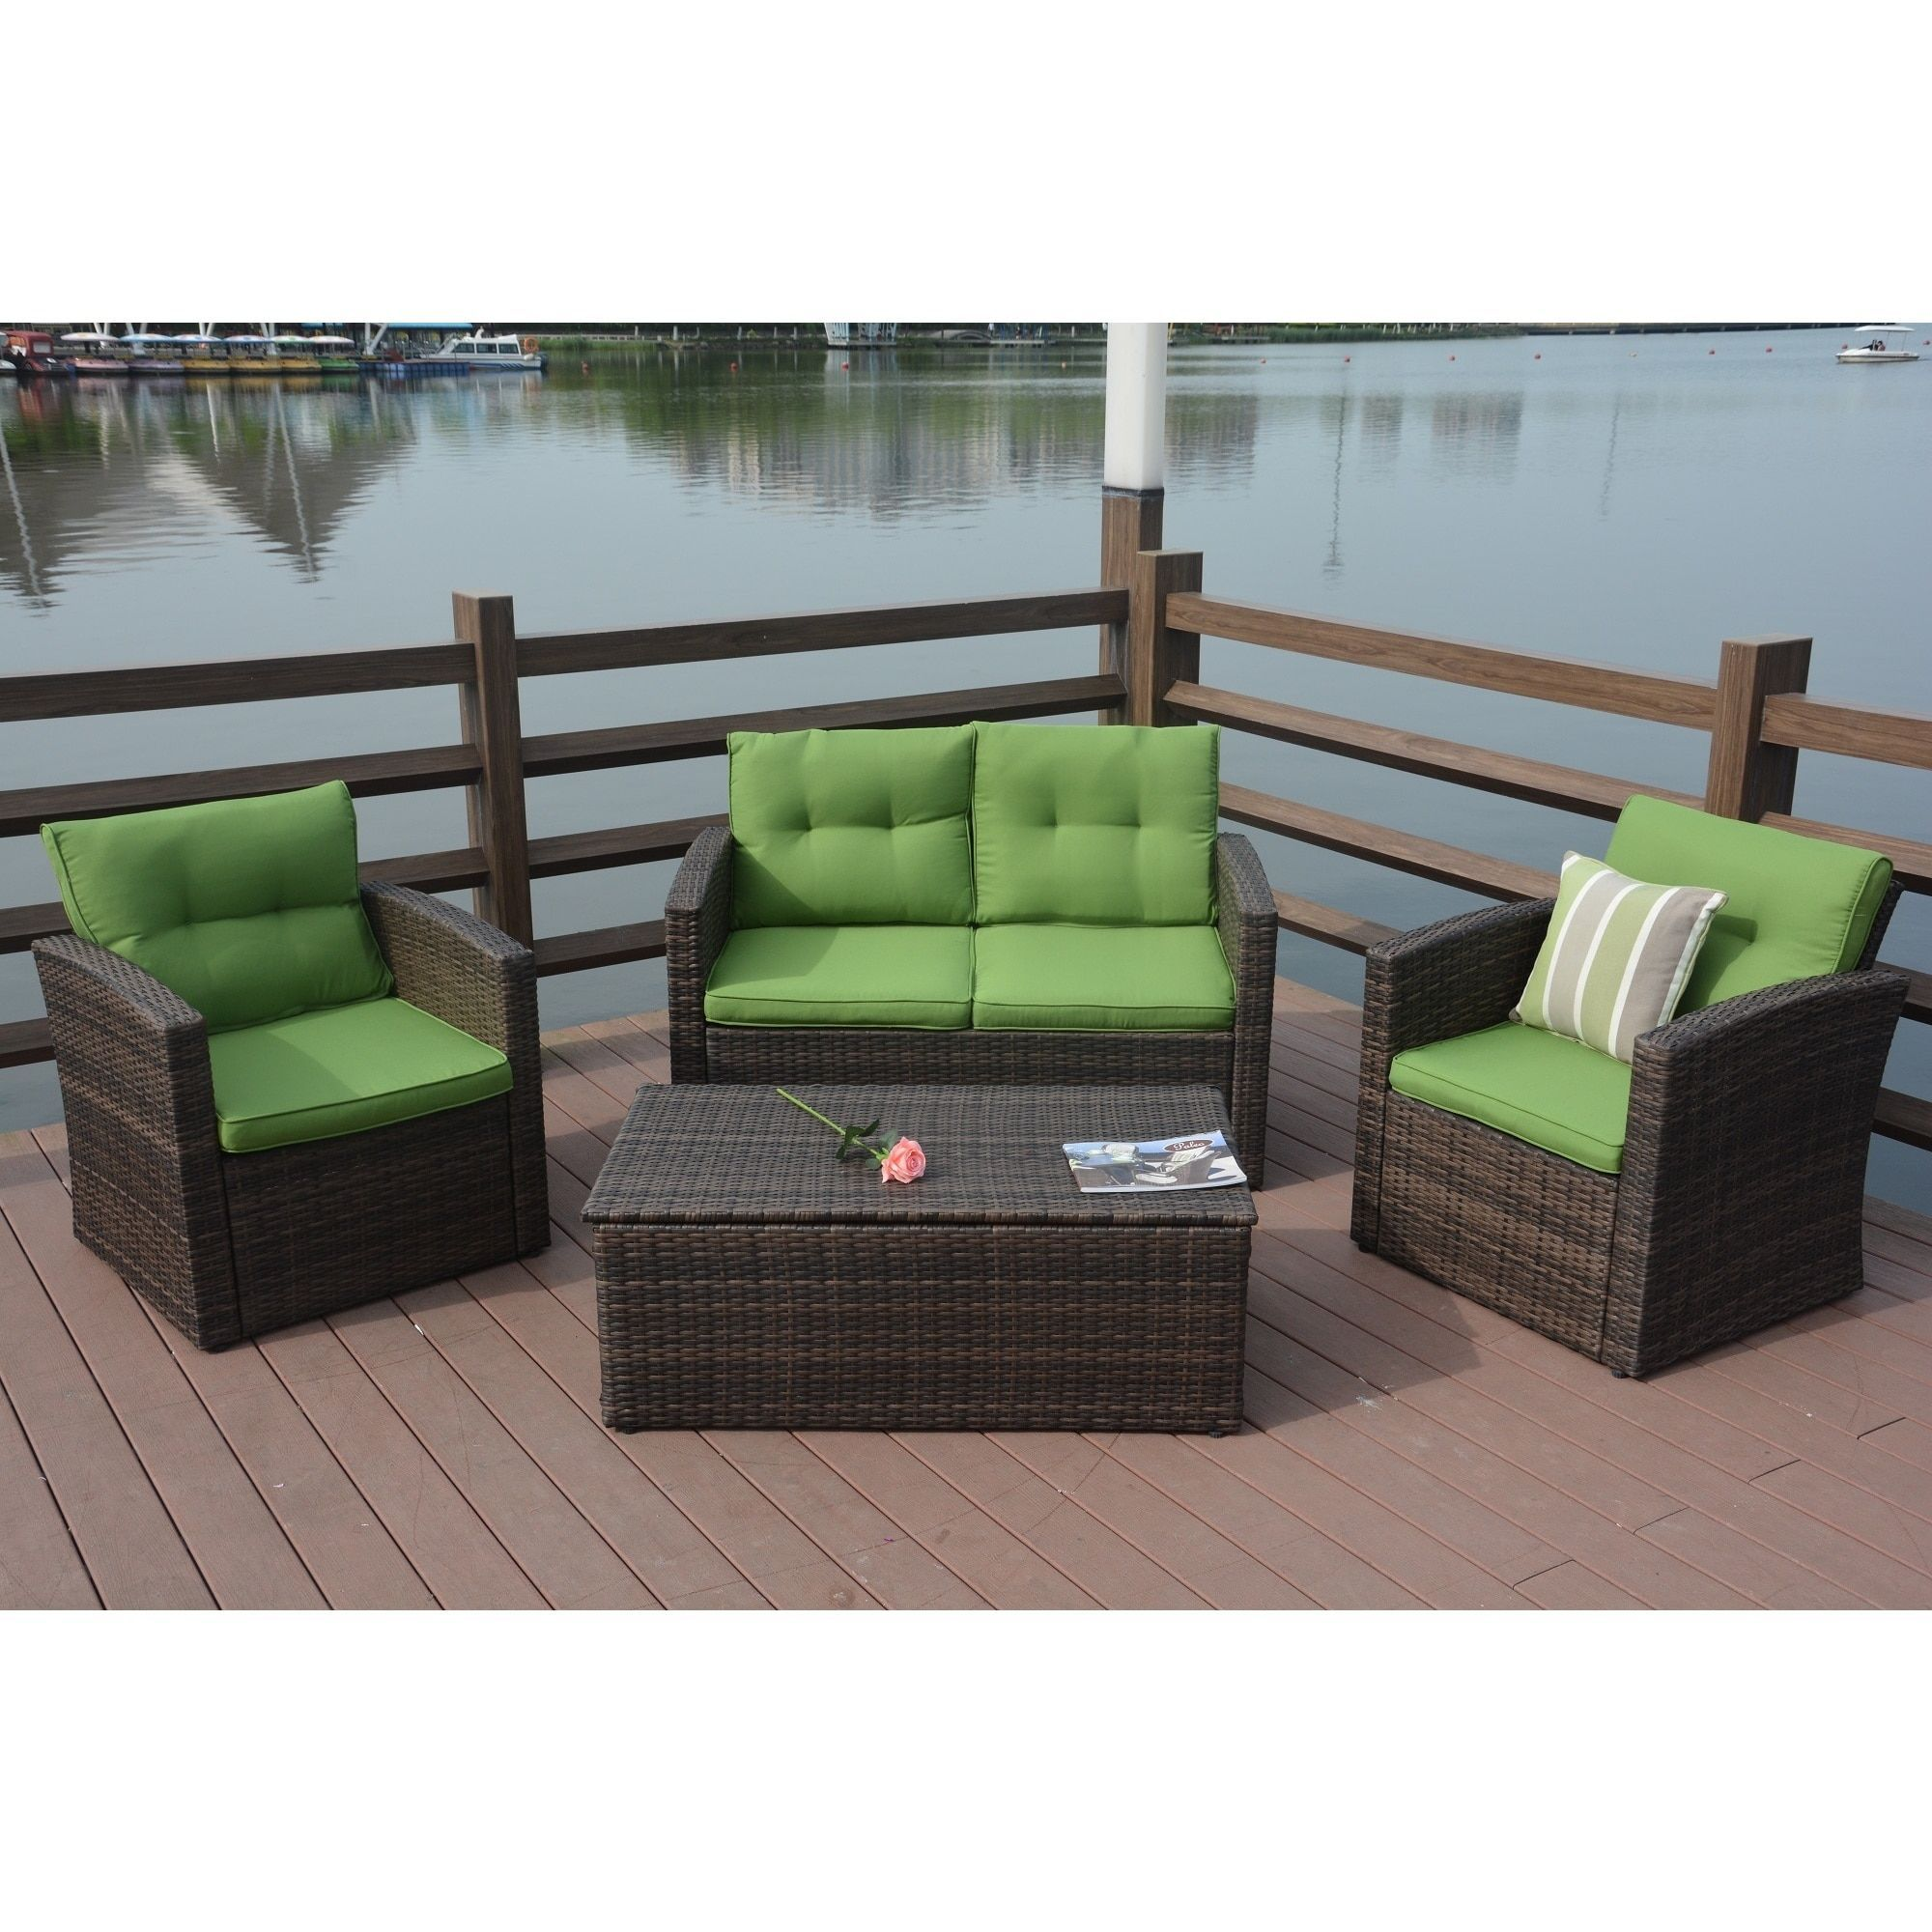 Puerta 4 piece Outdoor Wicker Patio Sofa Set with Cushion Box